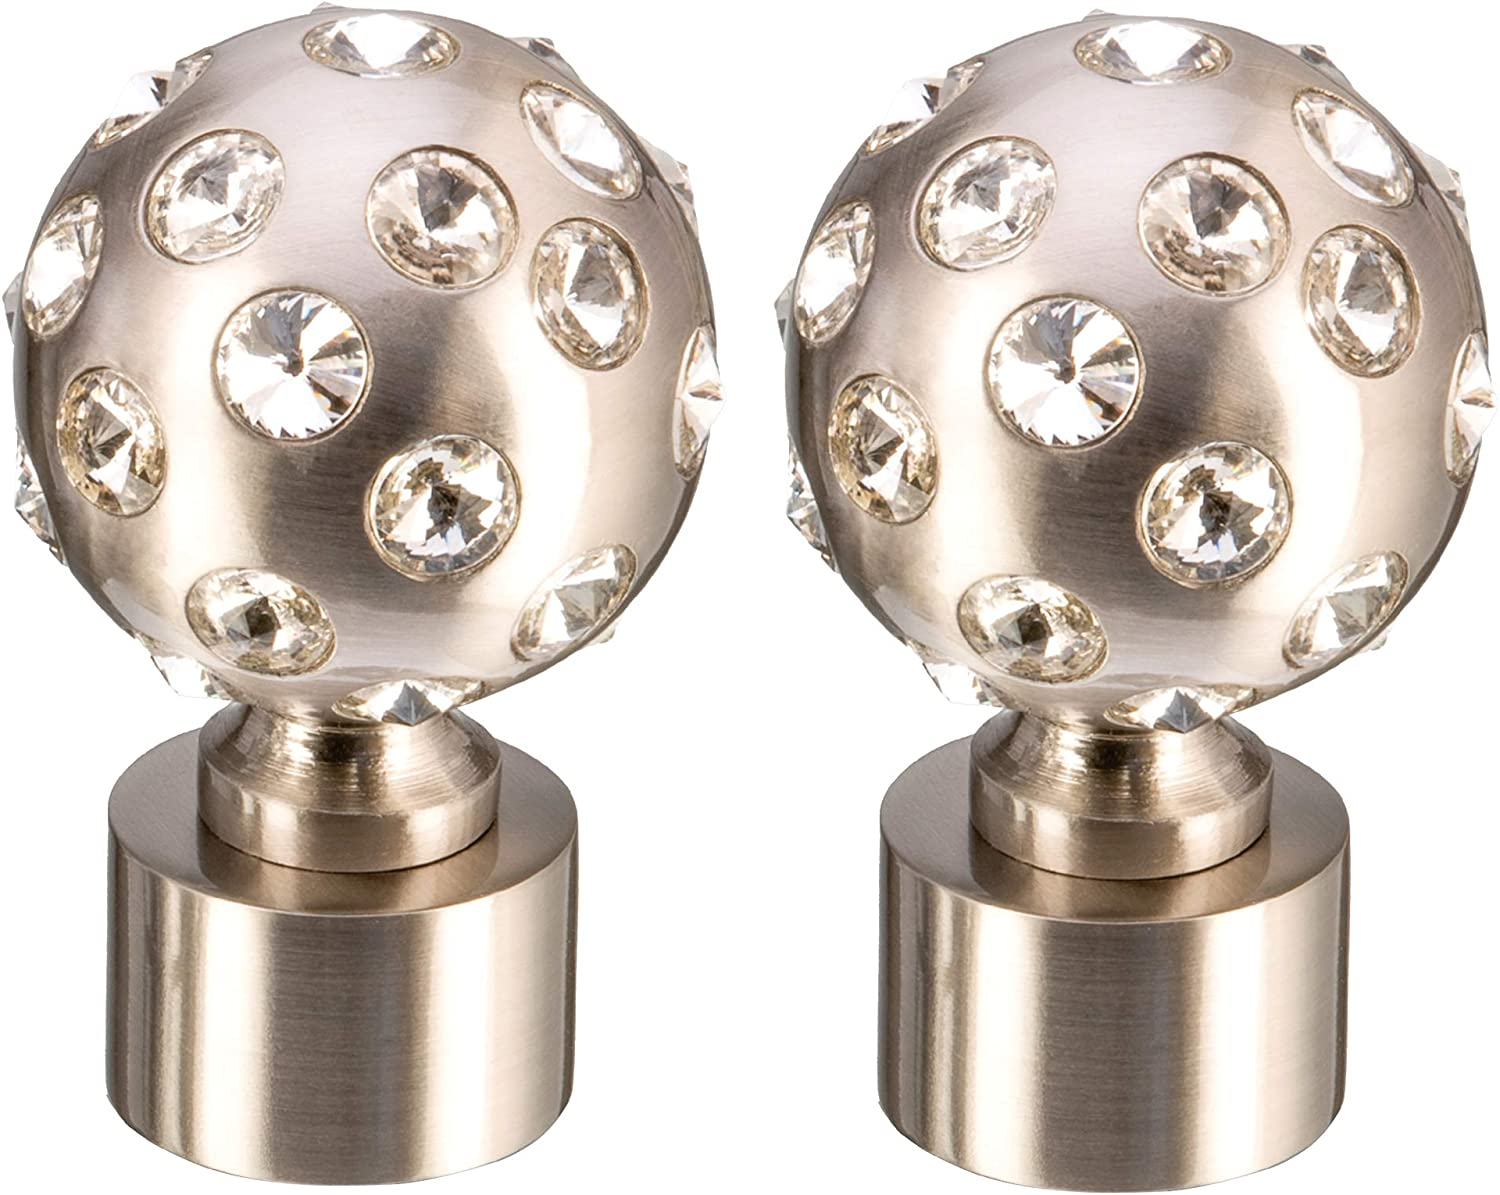 LIVE LOVE home Set of 2 Moonstone decorative Sales results No. 1 finials crystal B Selling rankings